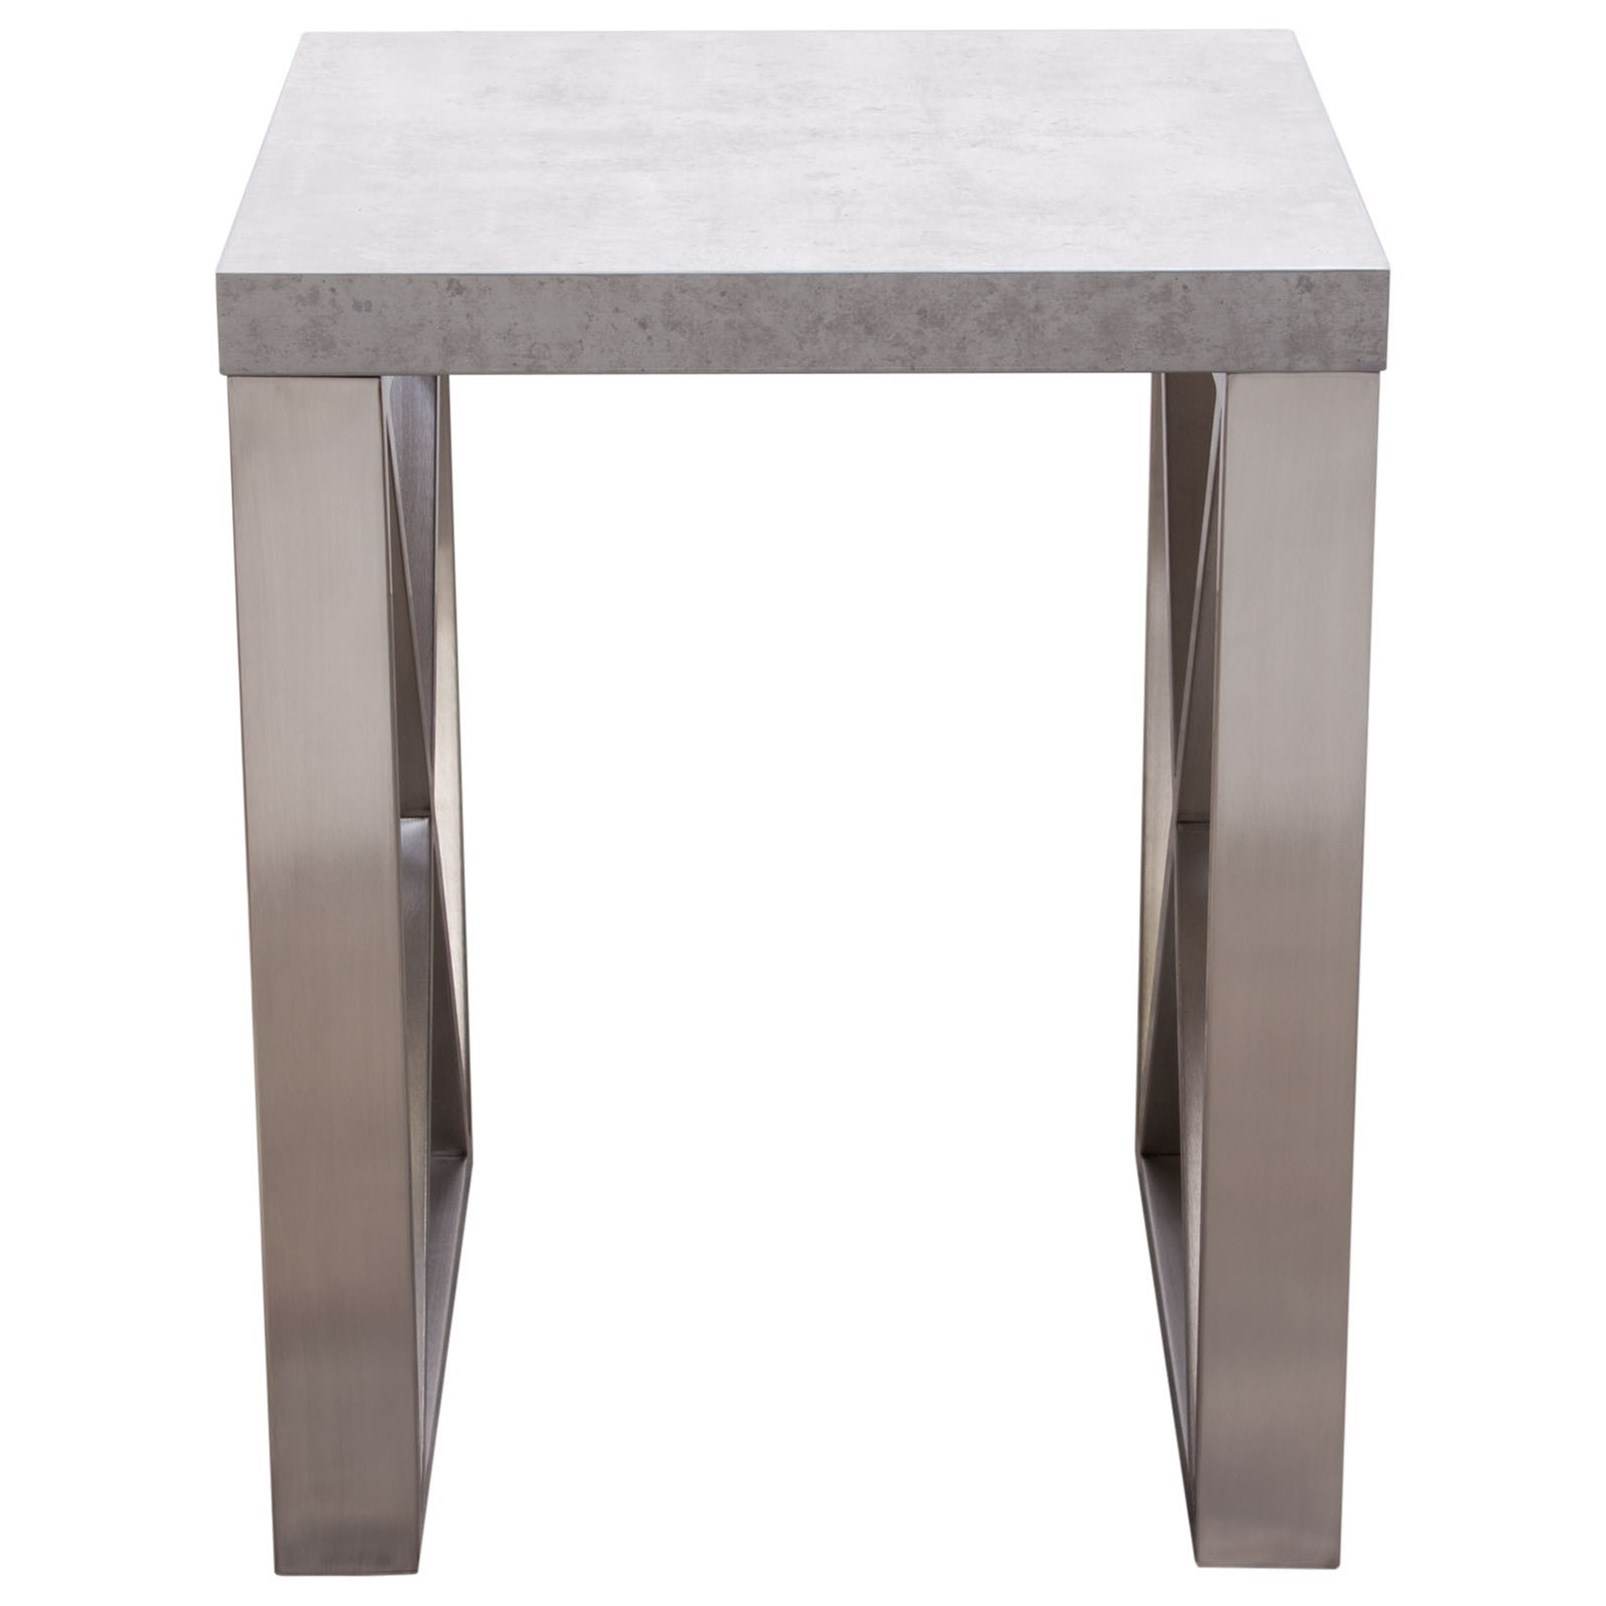 Diamond sofa carrera tables end table red knot end tables for Table carrera